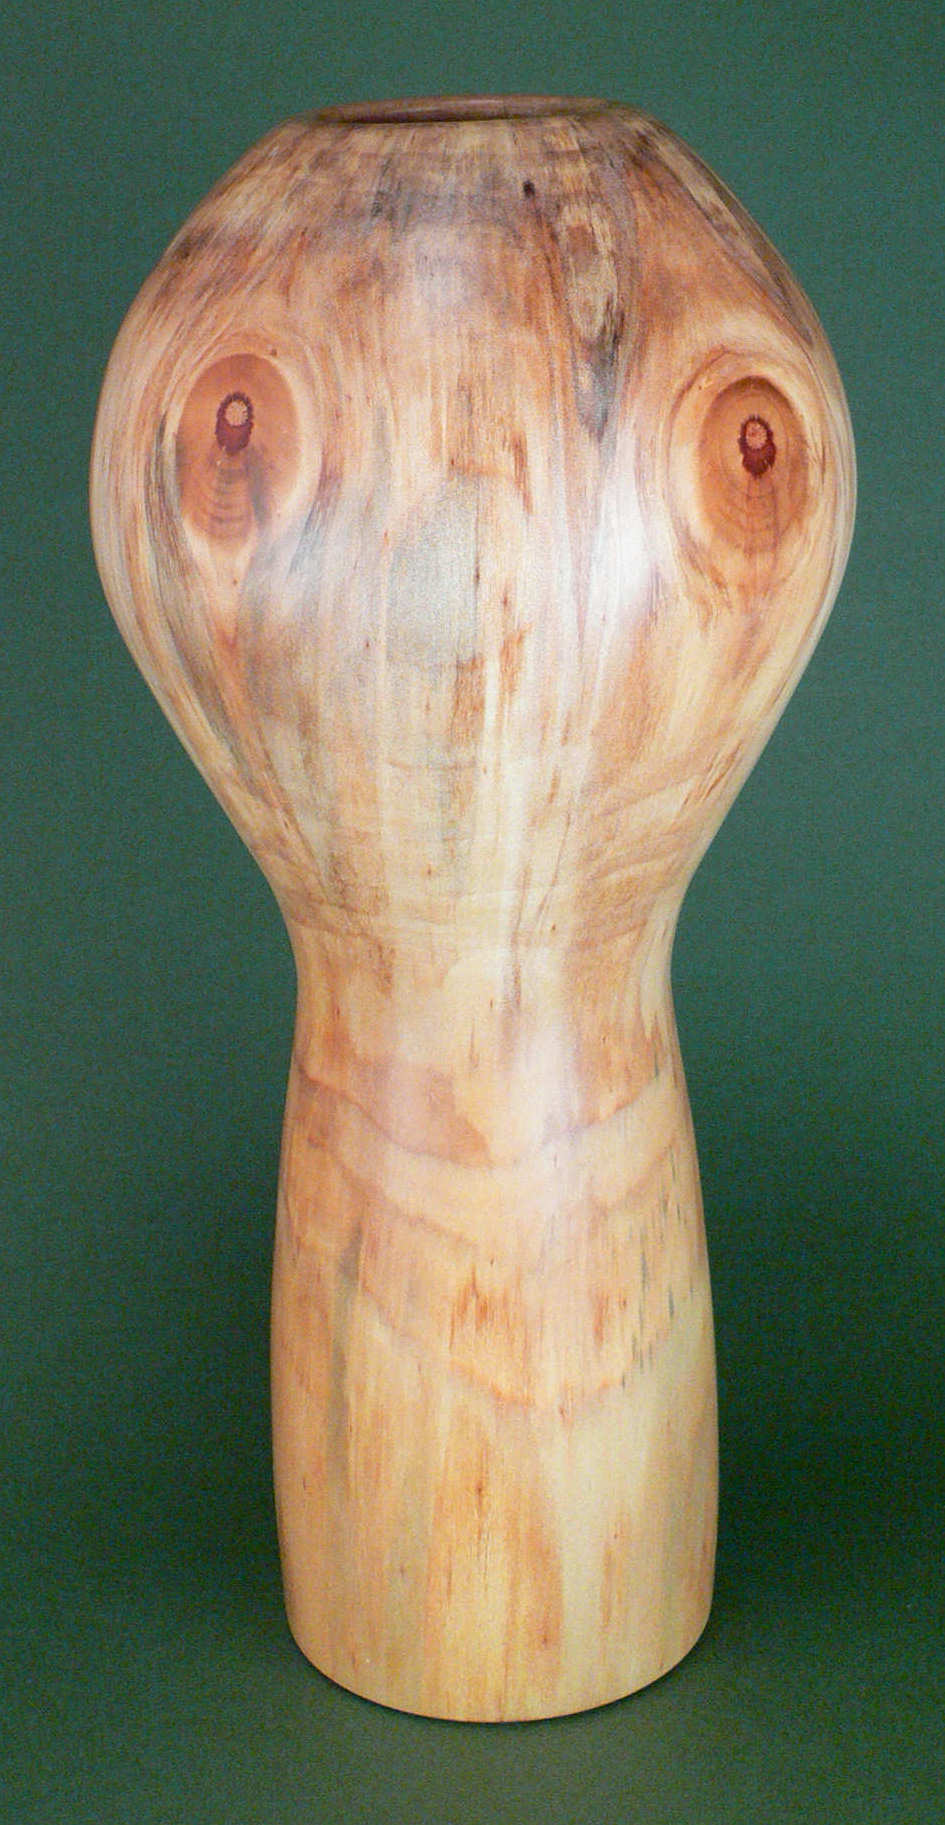 Image showing an example of a monkey puzzle hollow form vessel